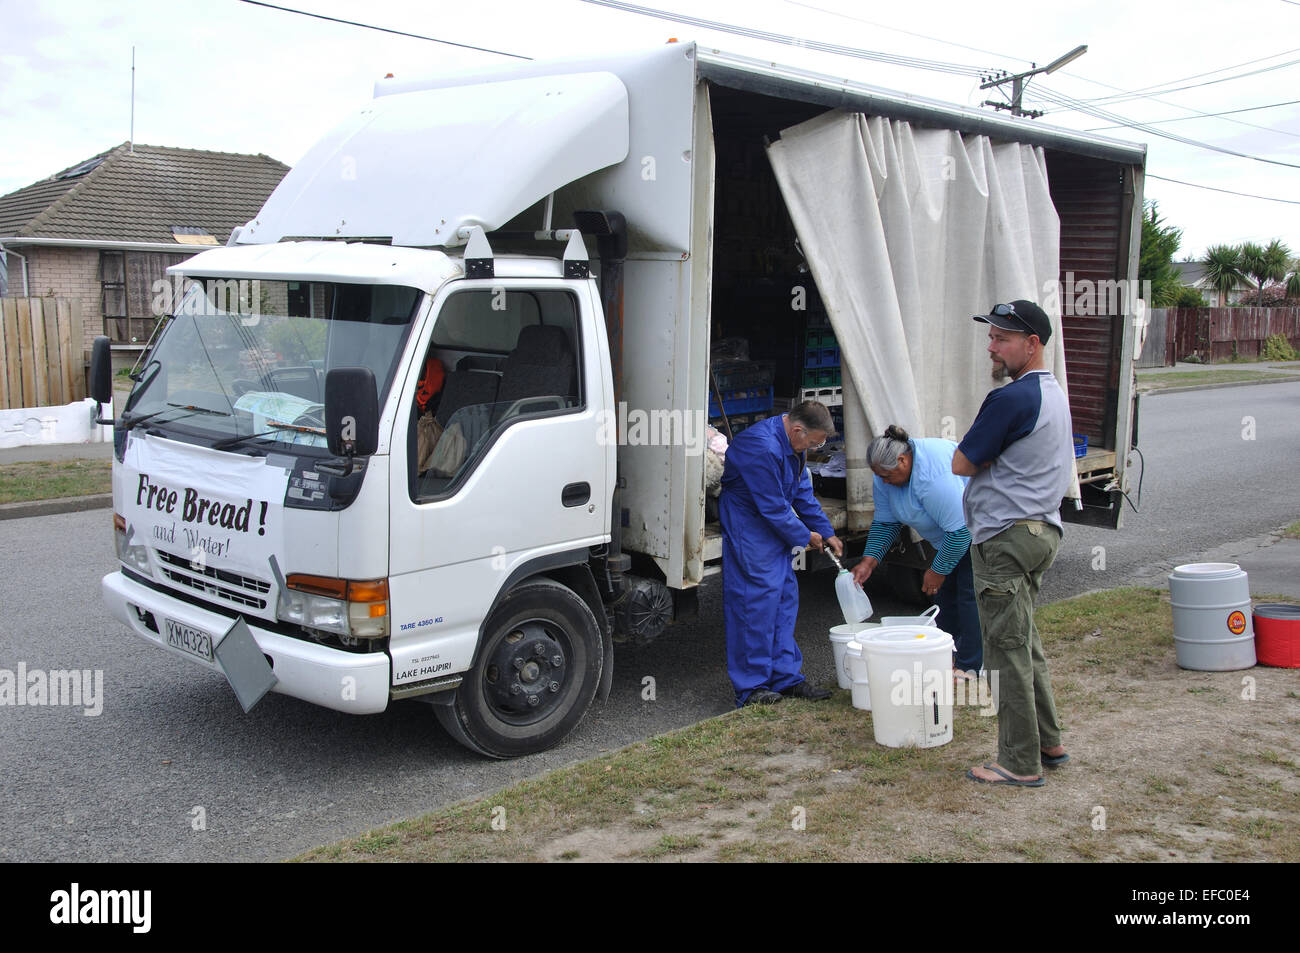 CHRISTCHURCH, NEW ZEALAND, FEBRUARY 22, 2011:  Volunteers bring water to the suburbs after the 6.4 magnitude earthquake - Stock Image